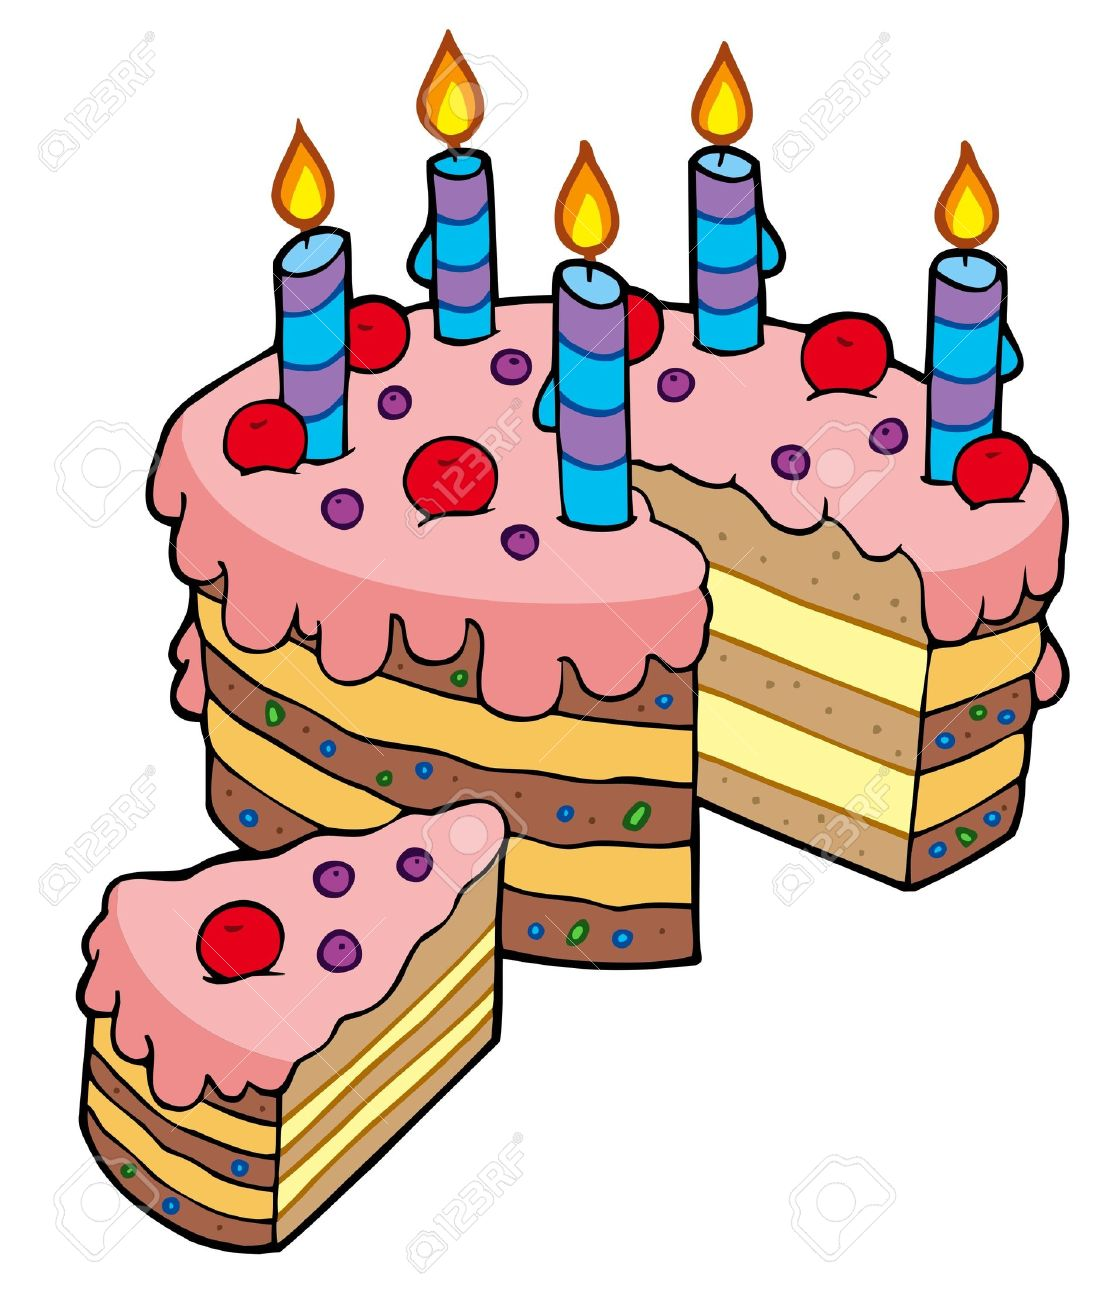 1108x1300 Images Birthday Cake On Fire Clipart